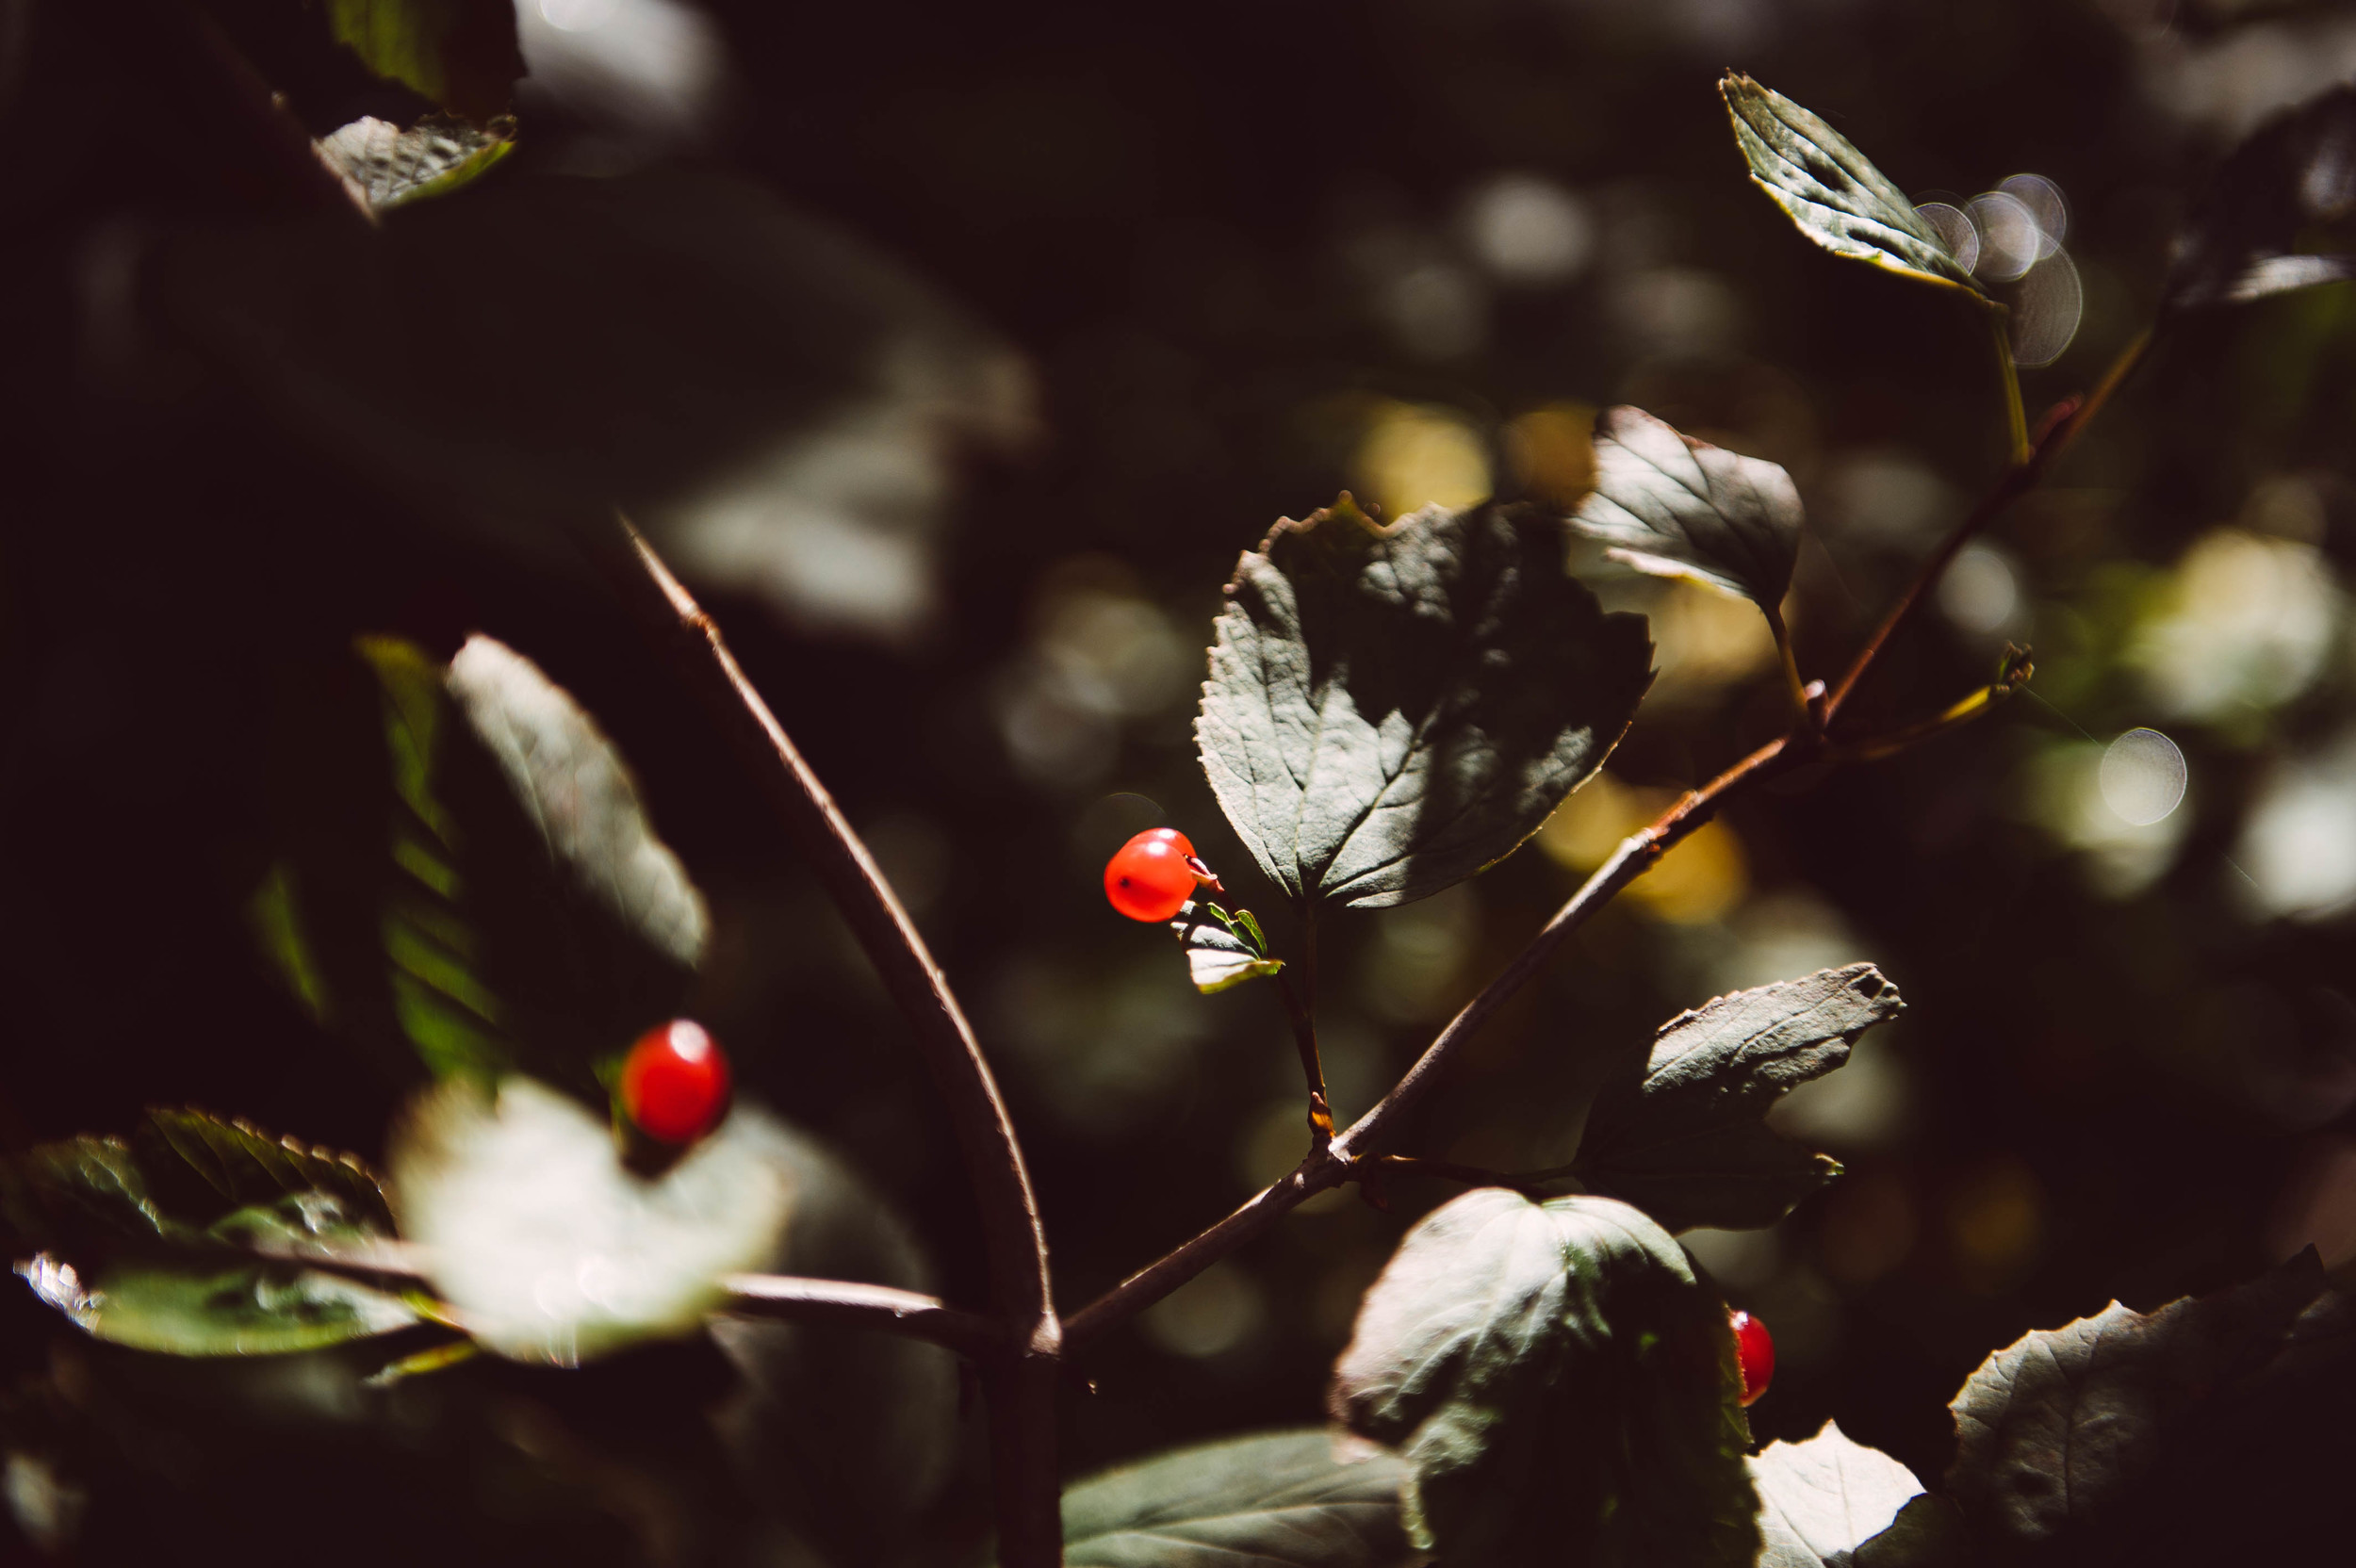 We munched on high bush cranberries and perfectly riped rosehips on our hike